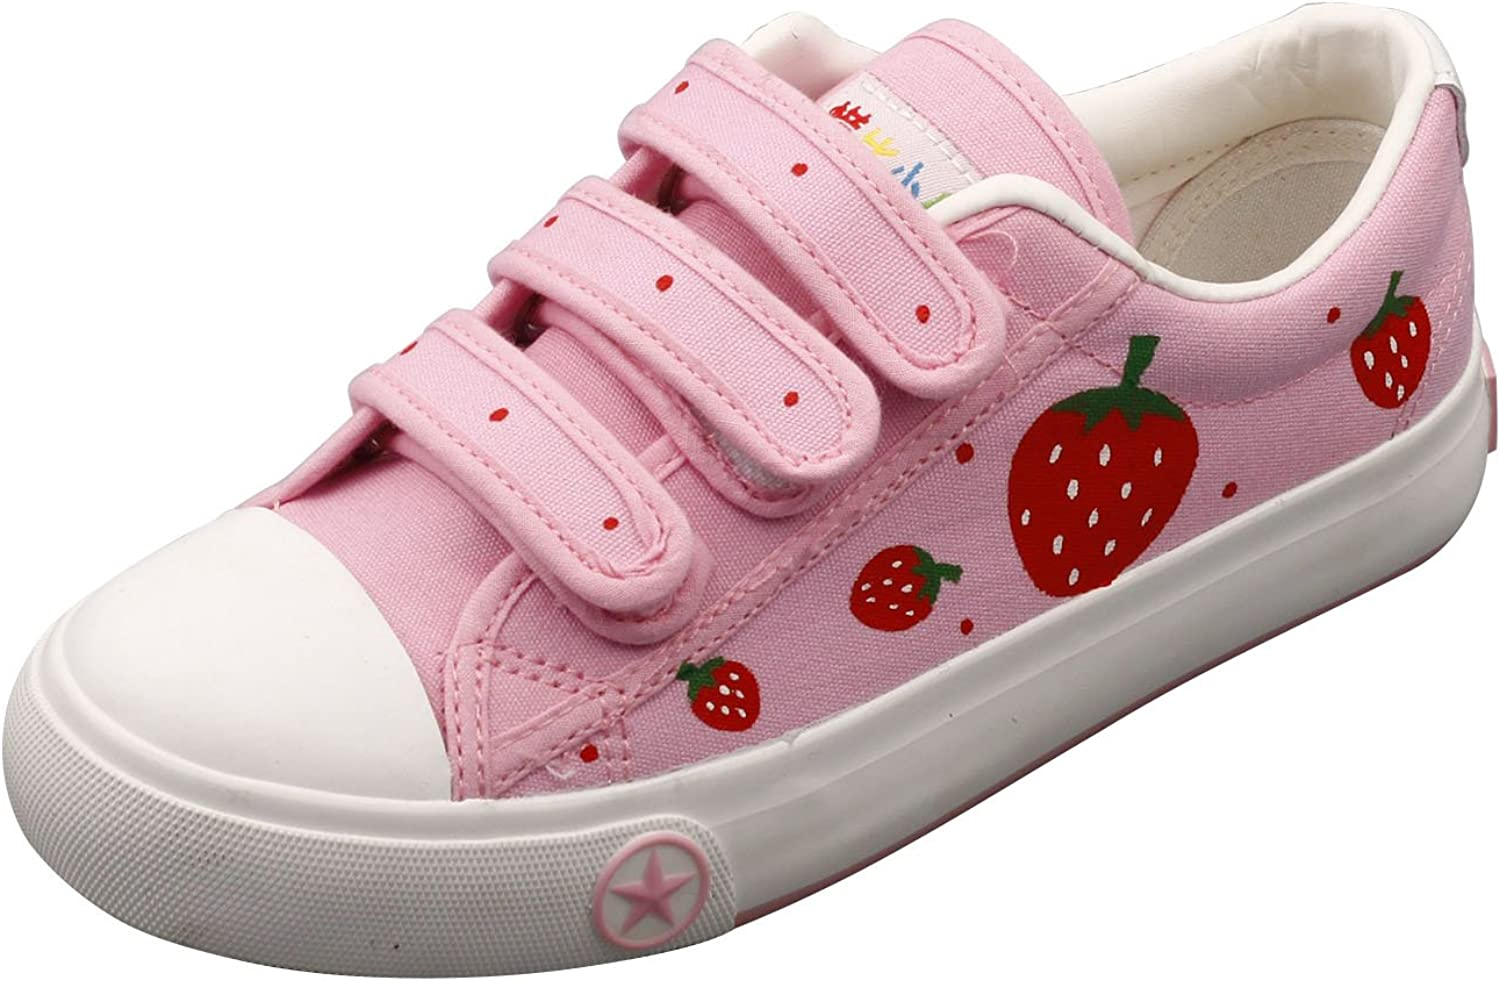 E-LOV Pink Strawberry Hand-Painted Canvas shoes Low Cut Sneakers Hook and Loop Strap Personalized Casual shoes for Women and Men